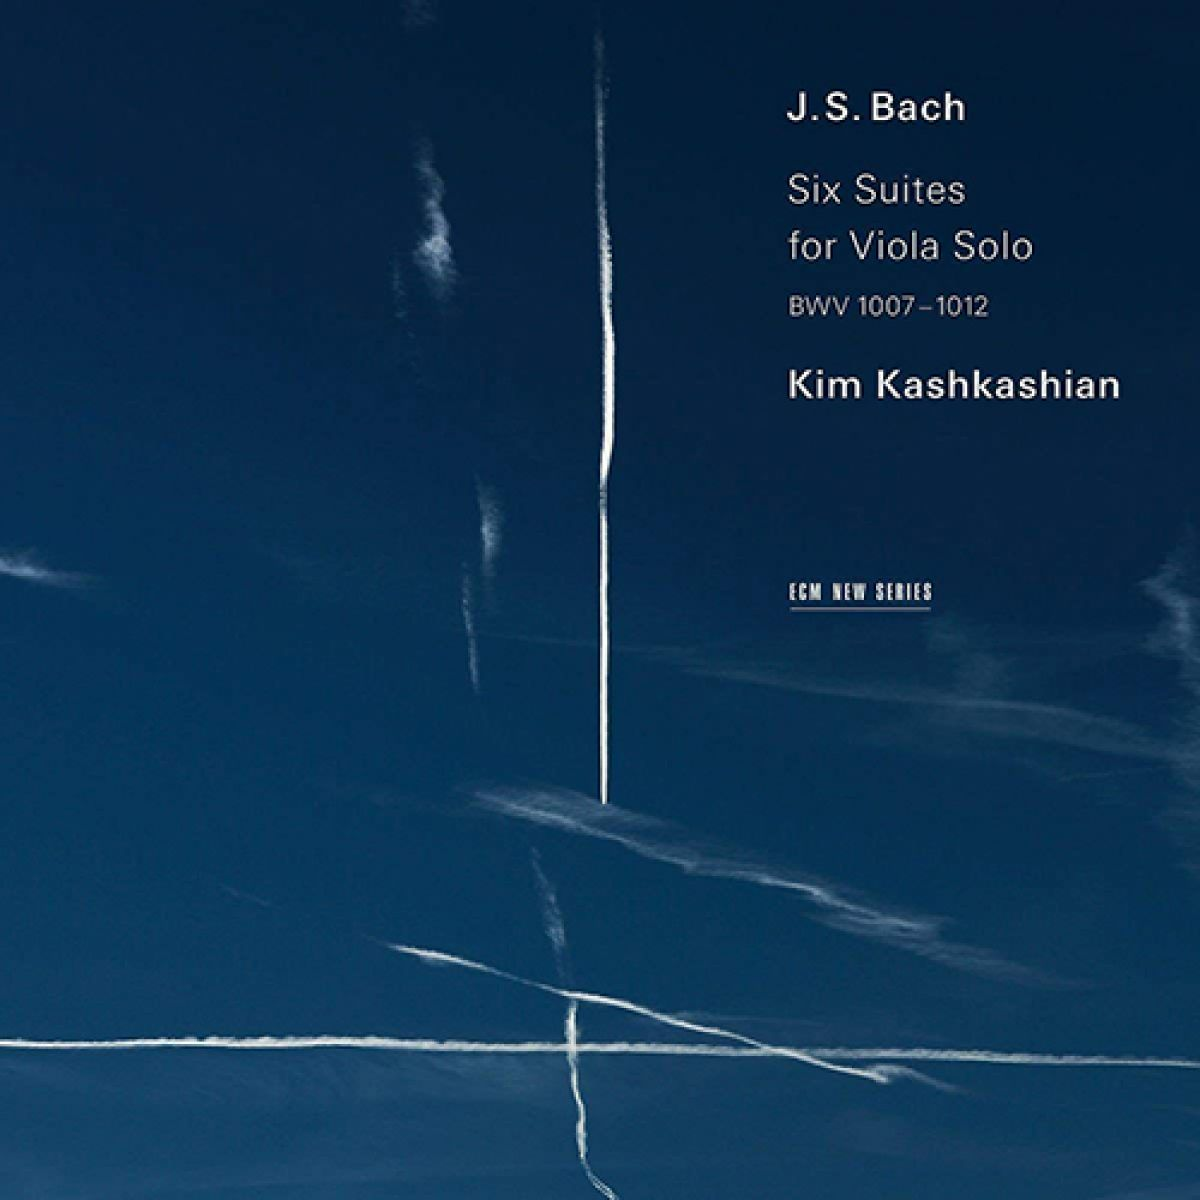 J.S. Bach - Six Suites for Viola Solo